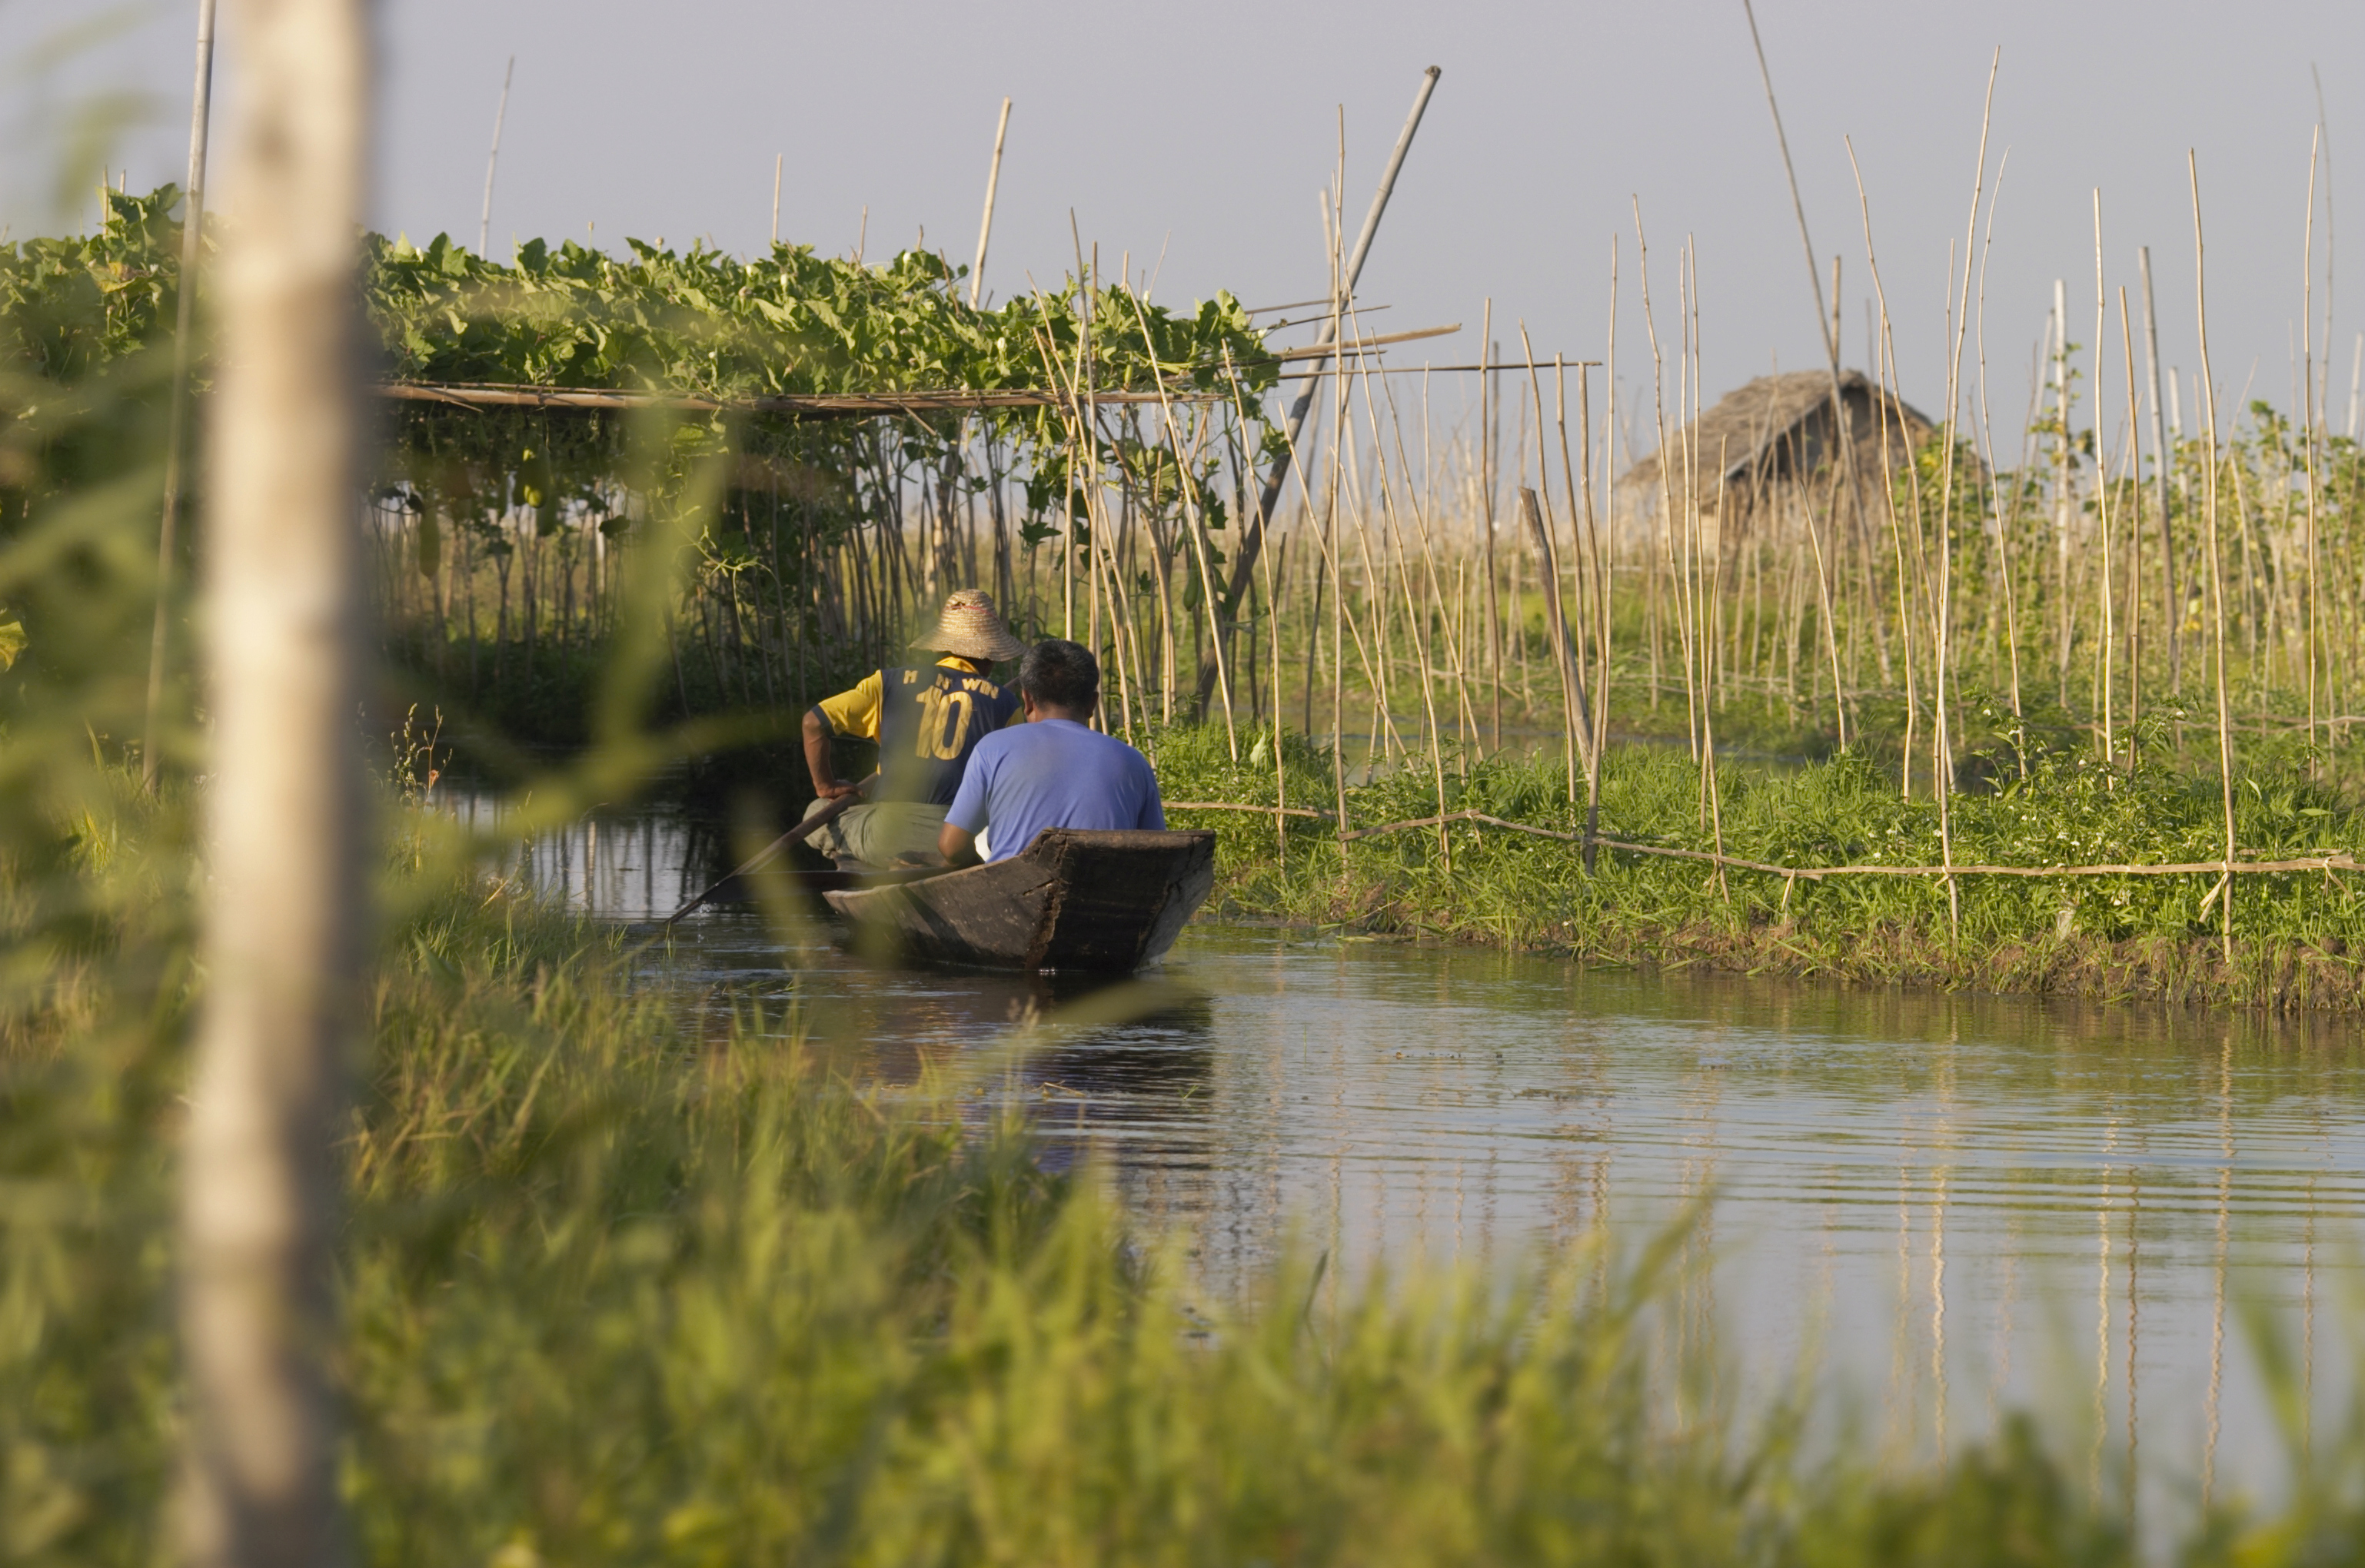 Inle Lake is famed for its floating gardens, Myanmar